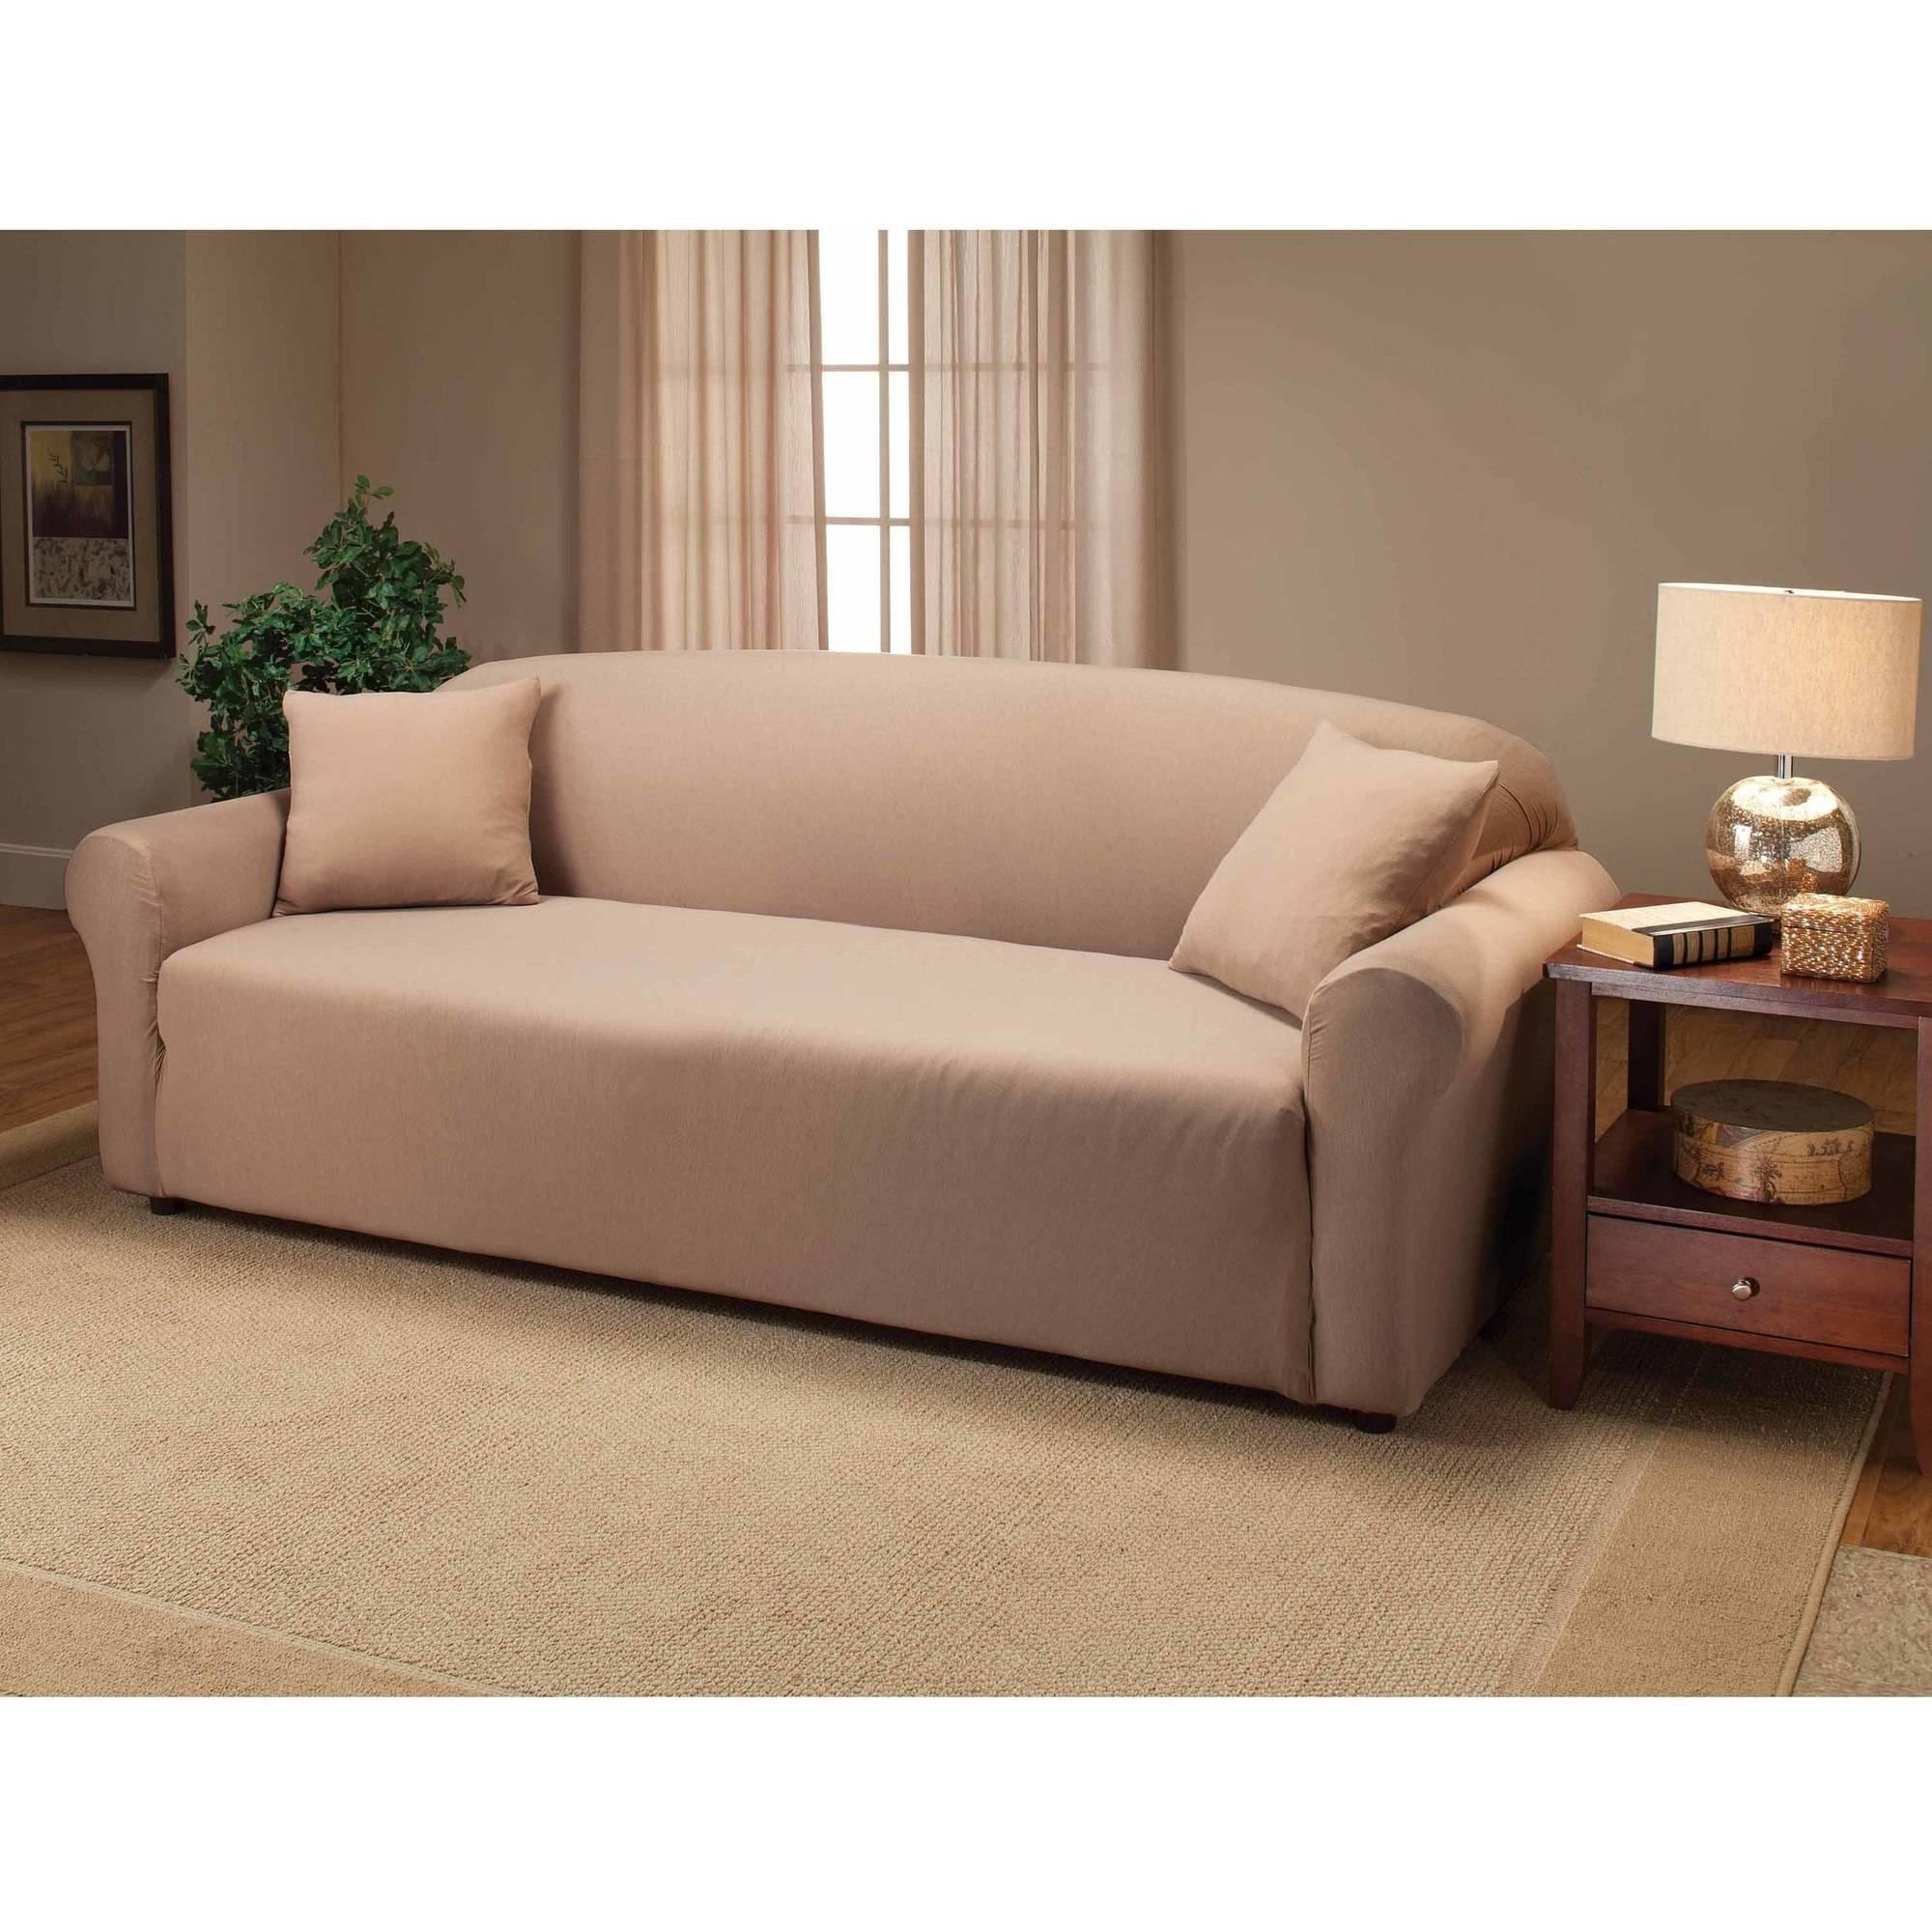 Jersey Stretch Sofa Slipcover - Walmart throughout Turquoise Sofa Covers